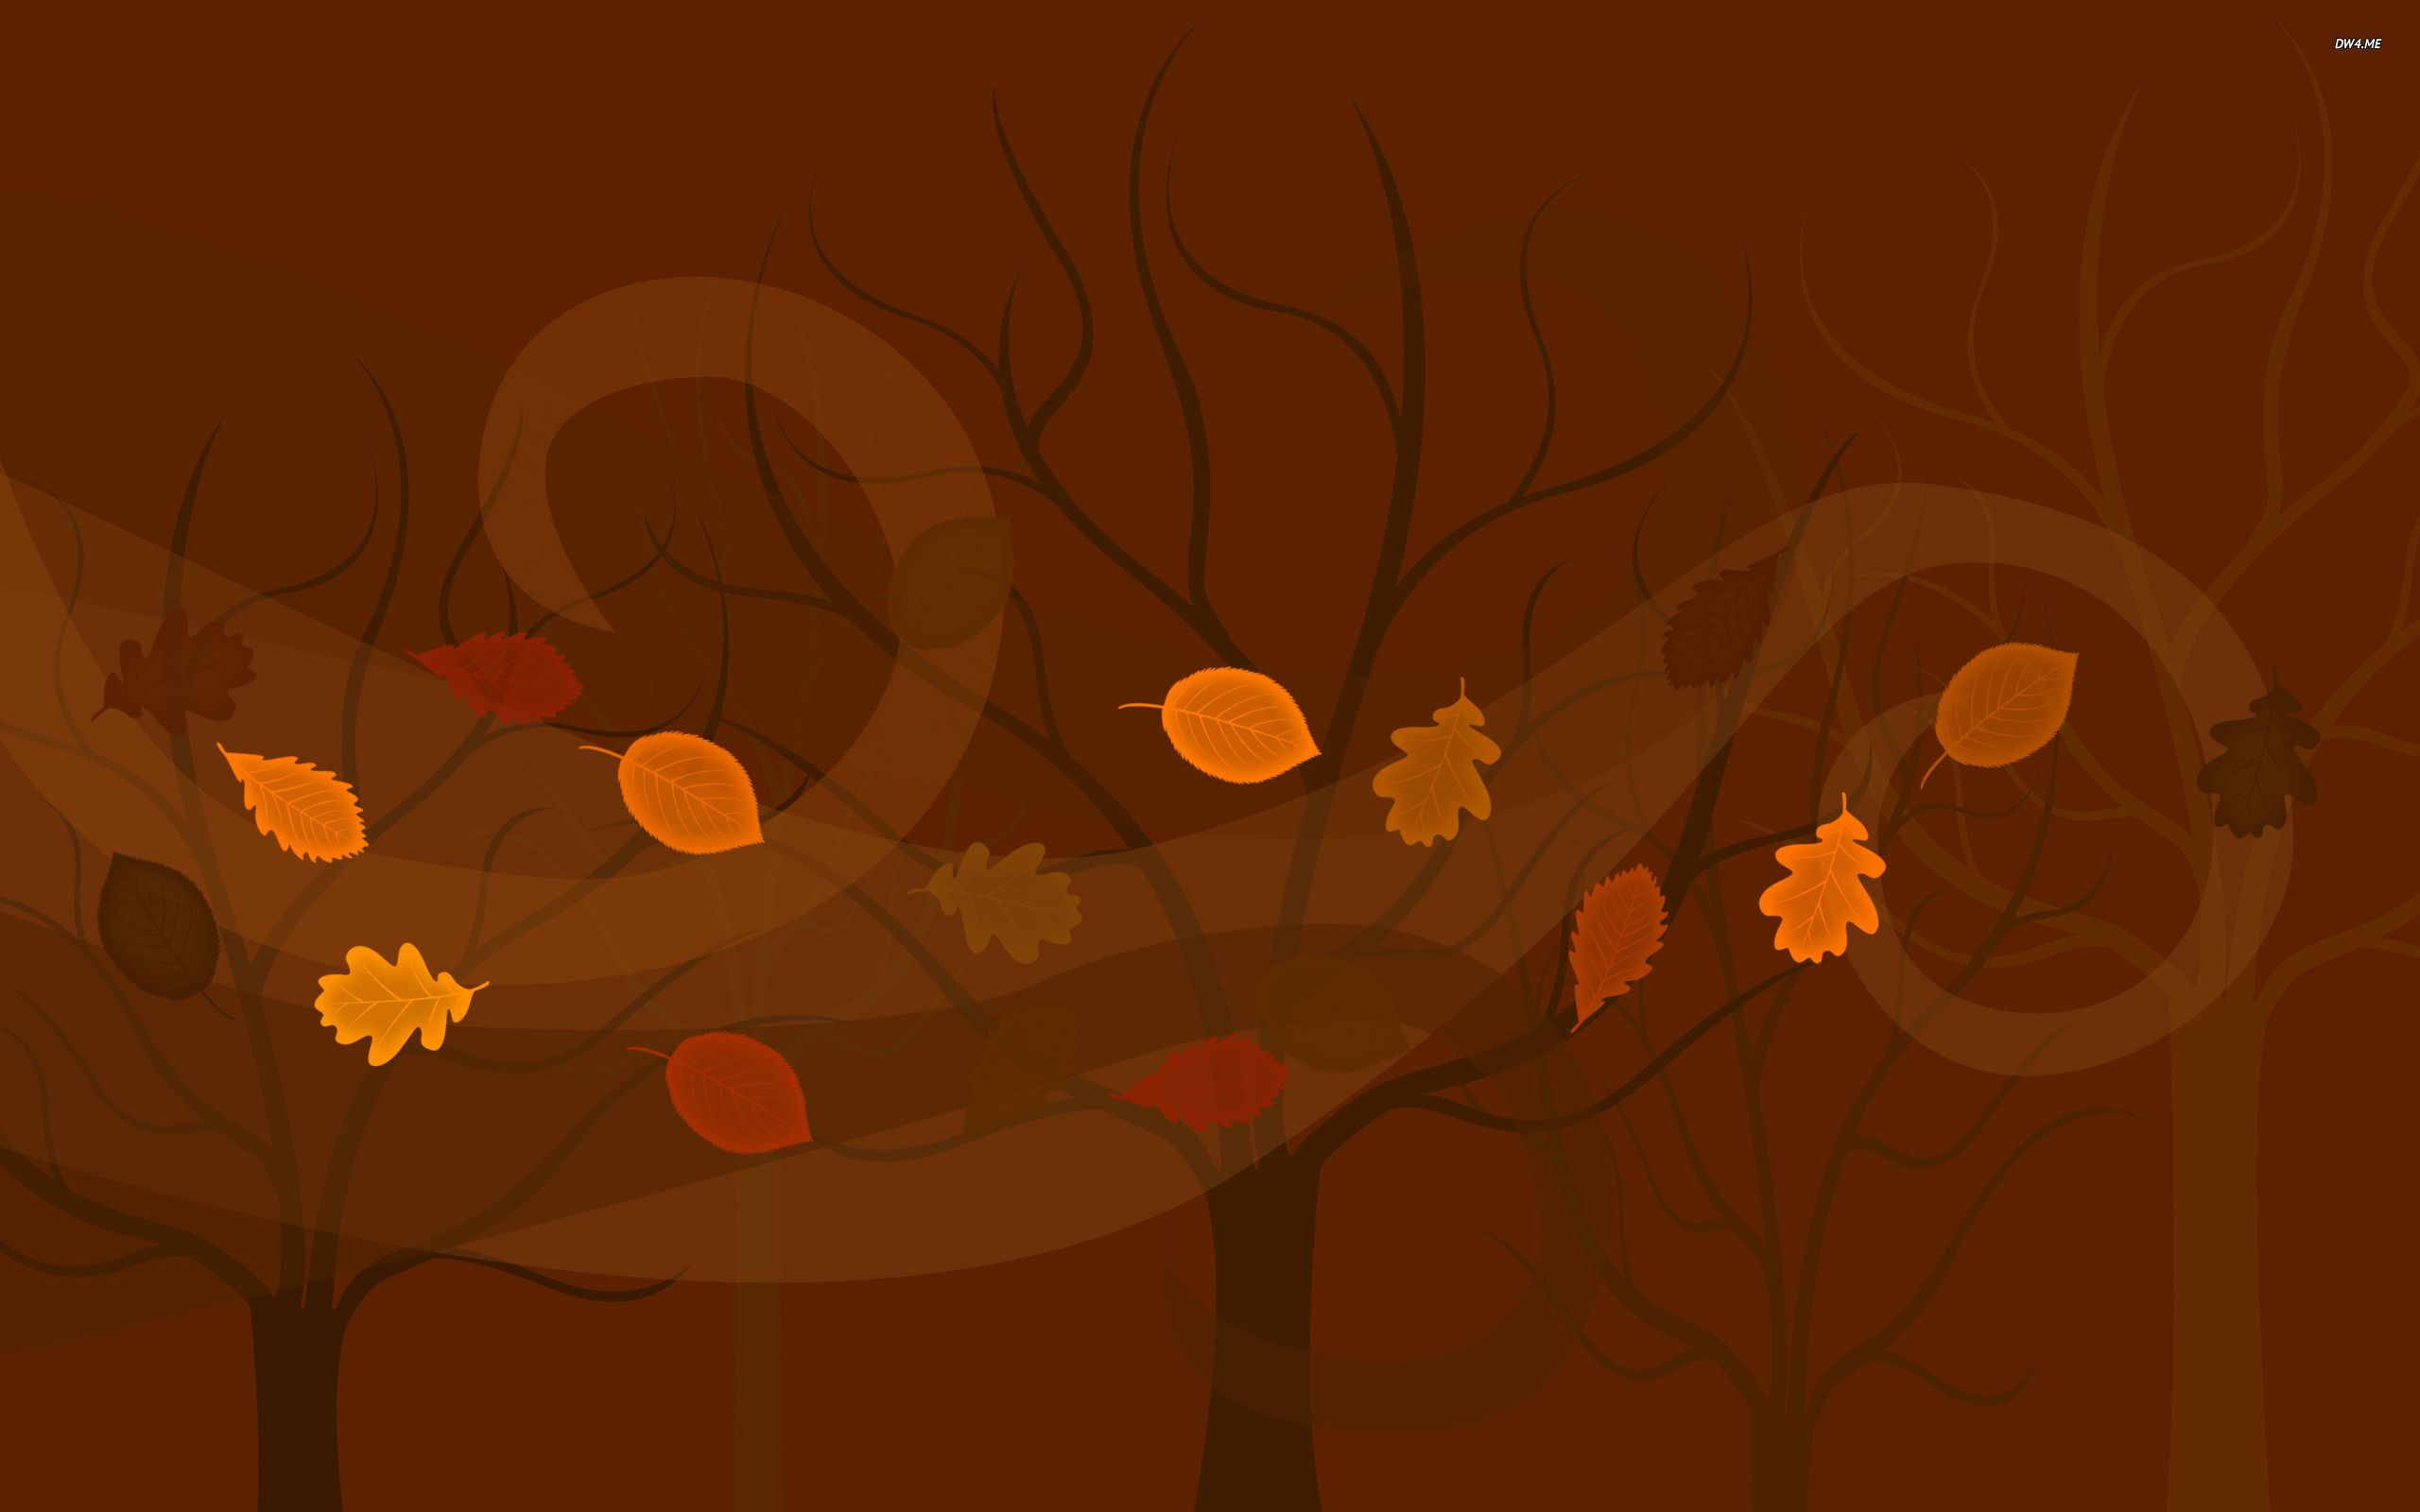 leaves blown by trees Painting, Wallpaper, Halloween